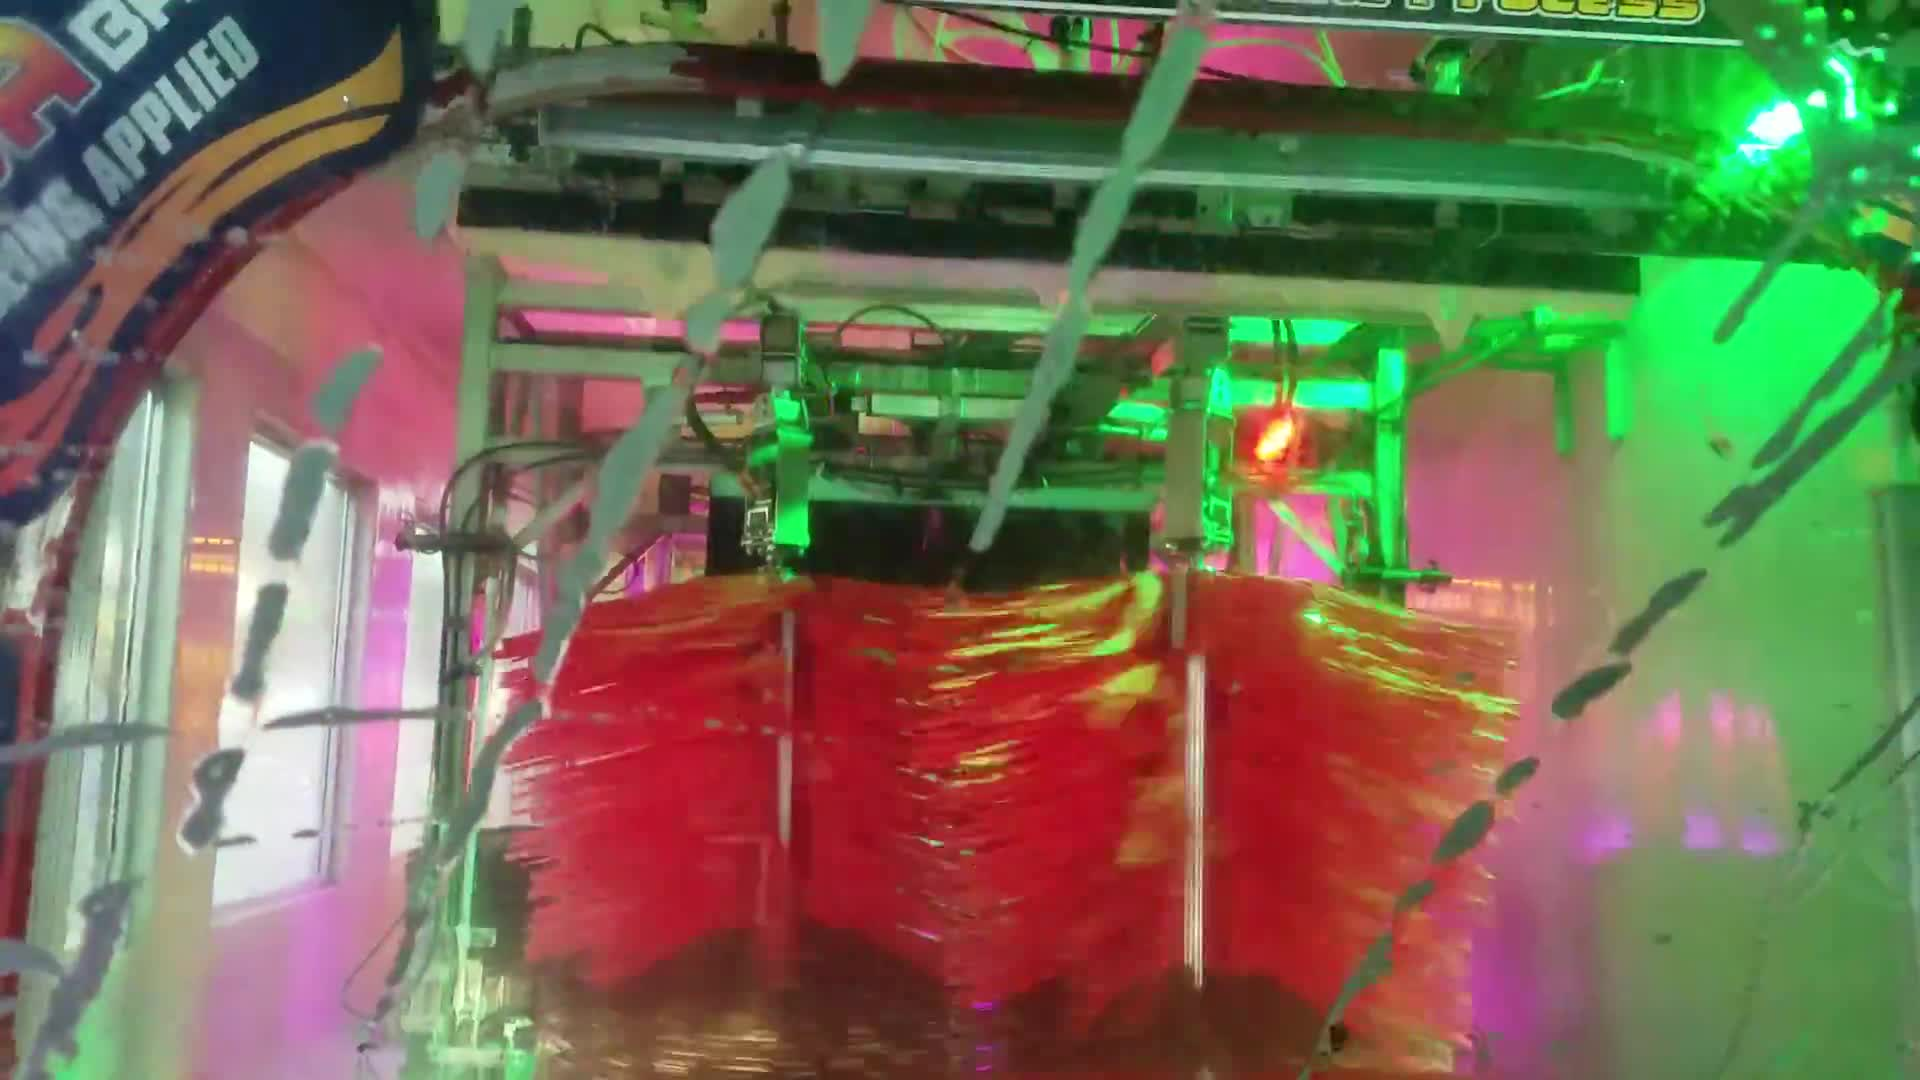 Lava car wash with light show. GIFs